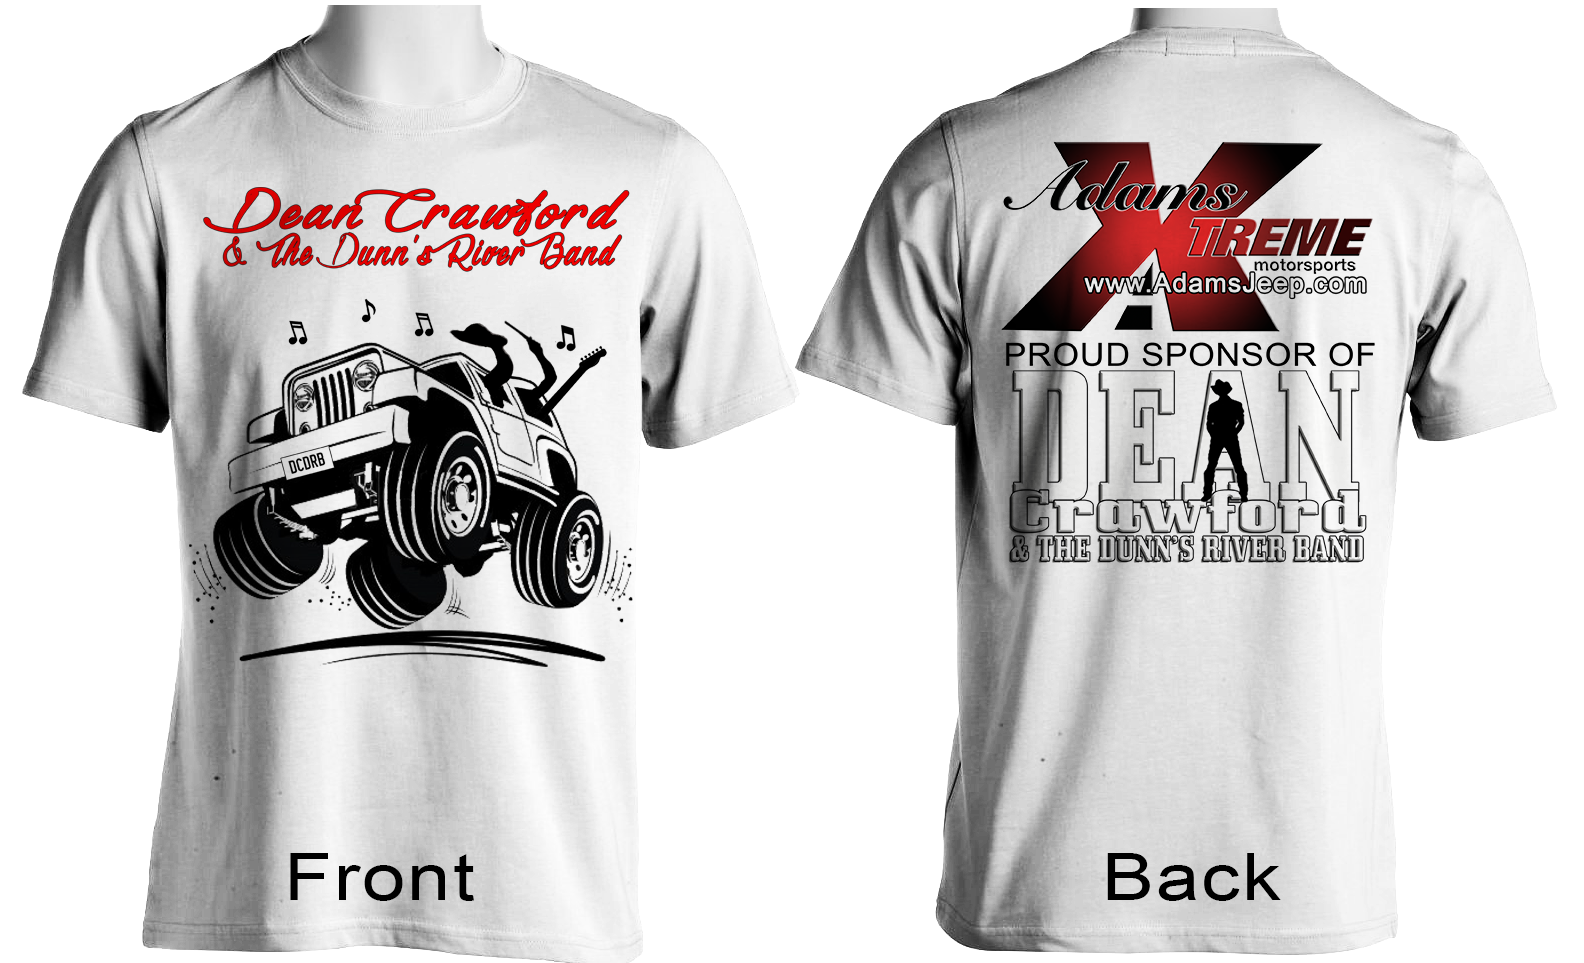 Maryland Promotions And Webdesign TShirt Design - Jeep t shirt design